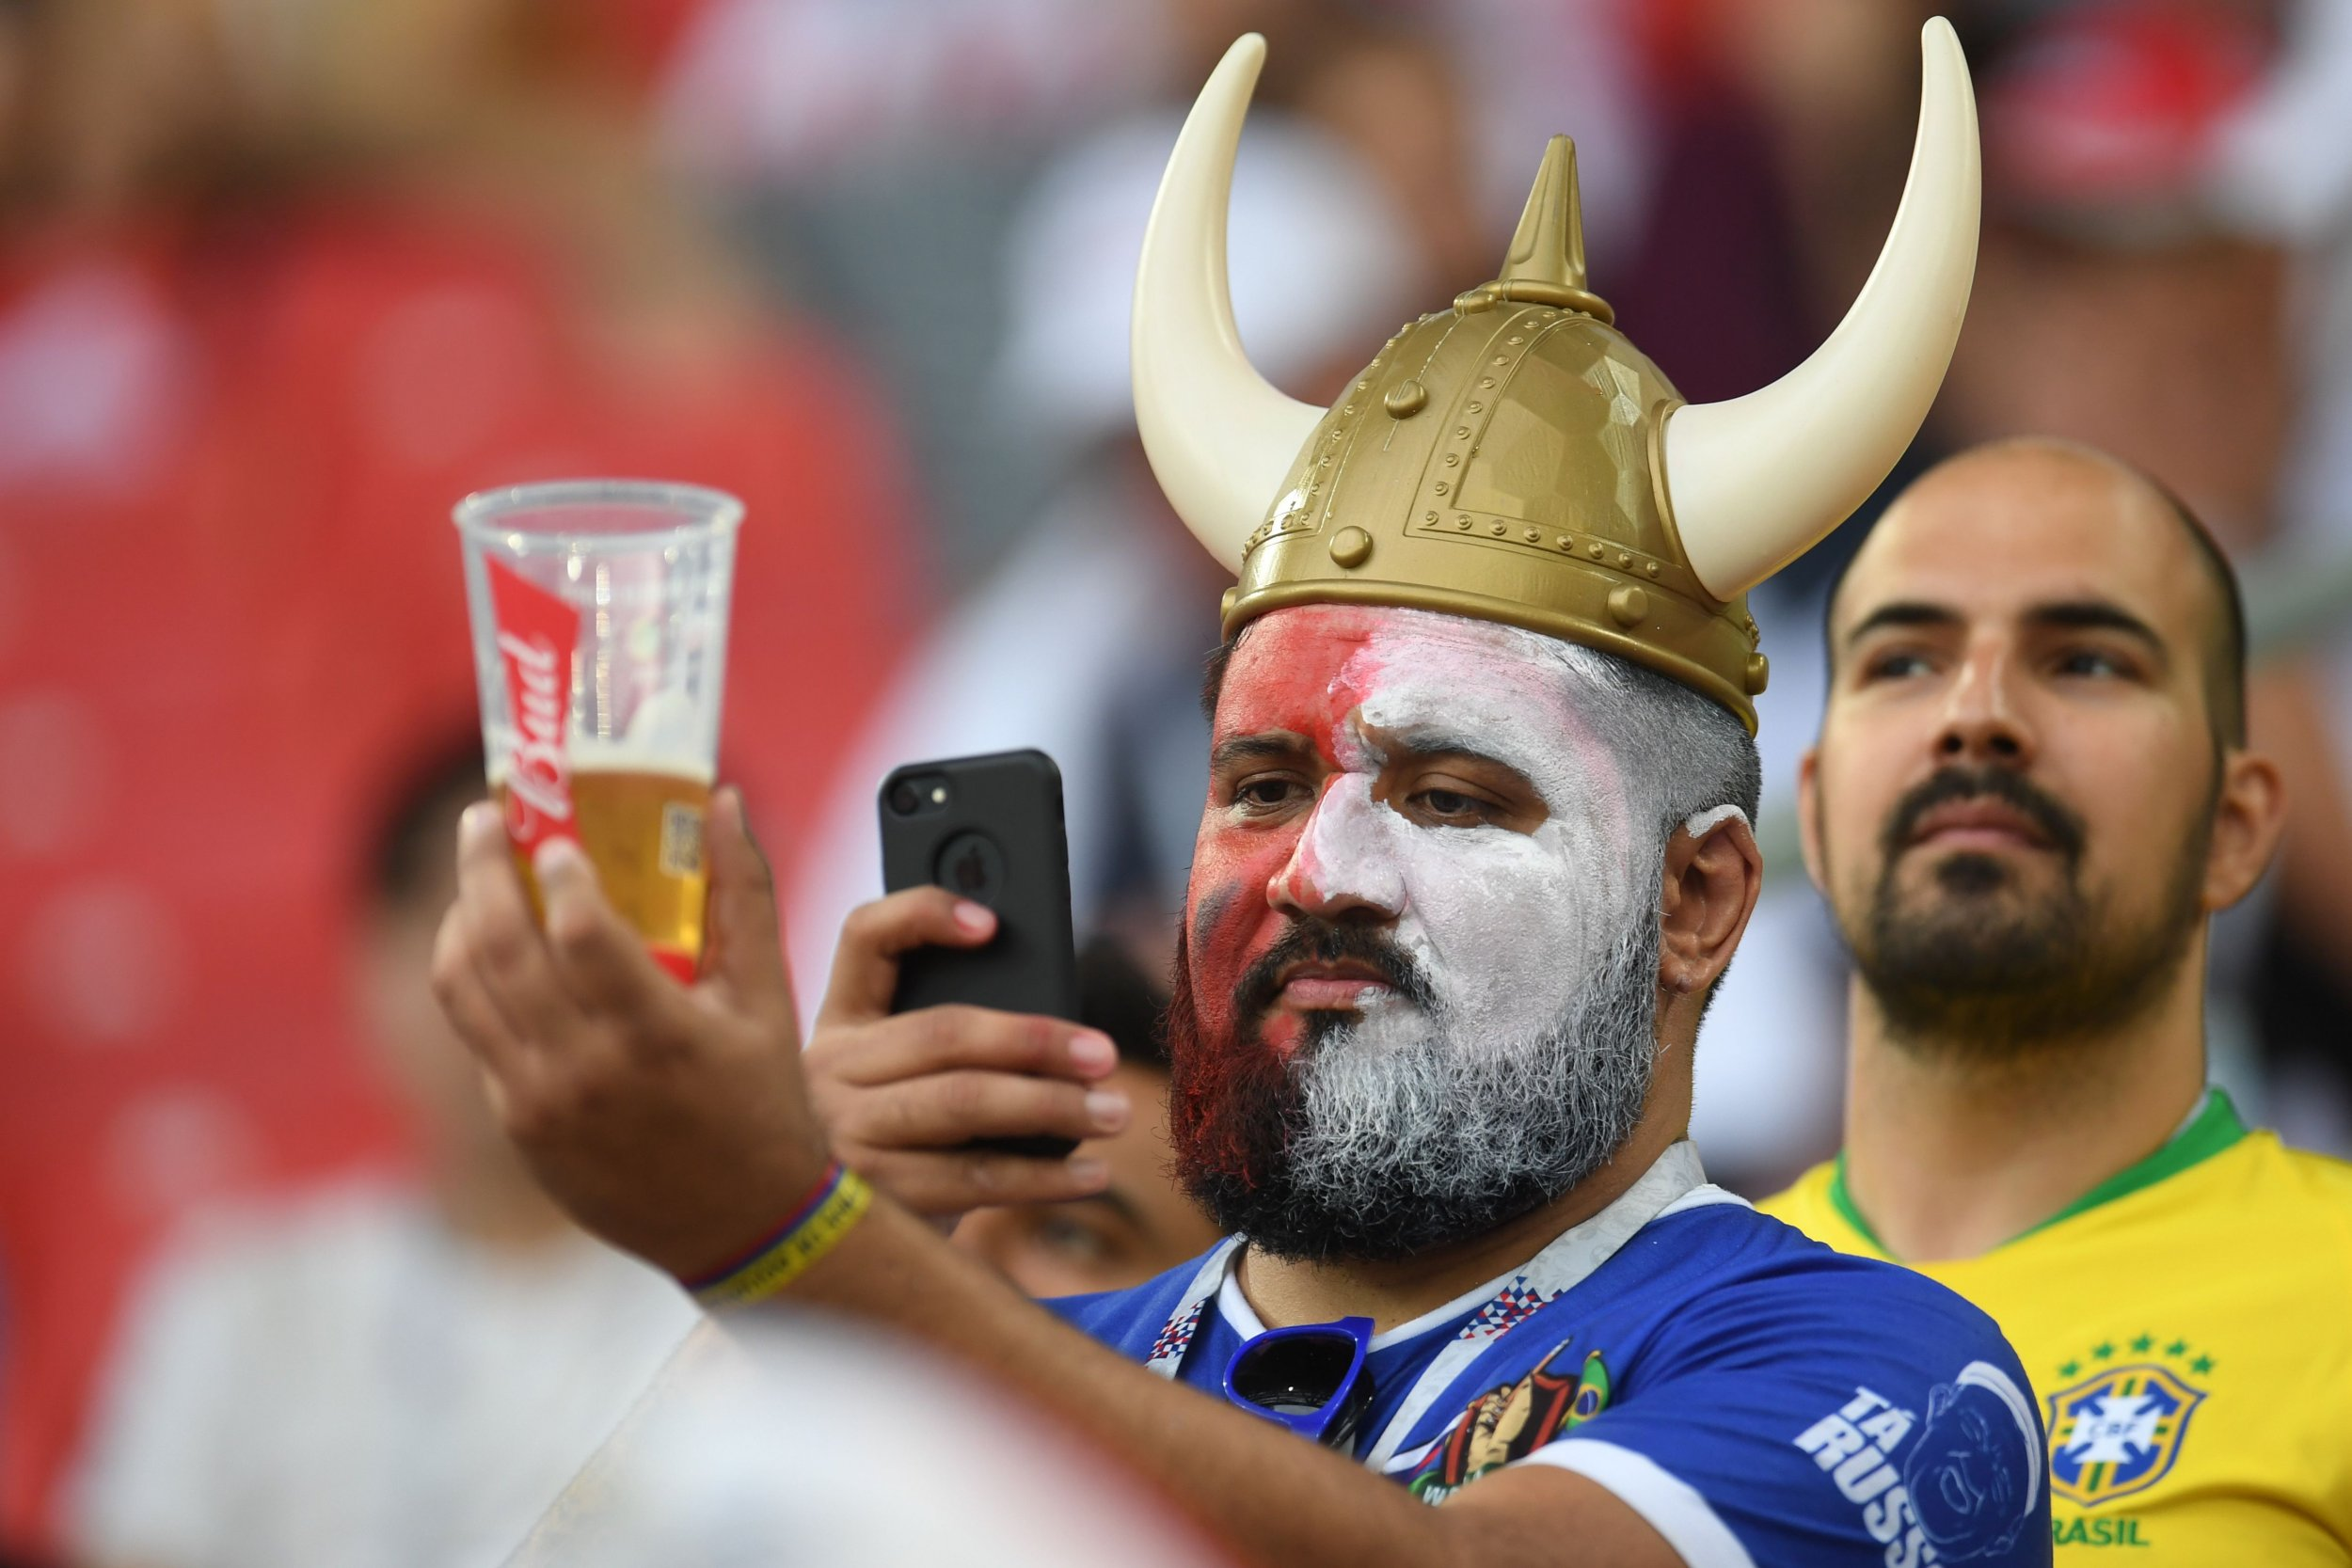 06_21_World_Cup_fans